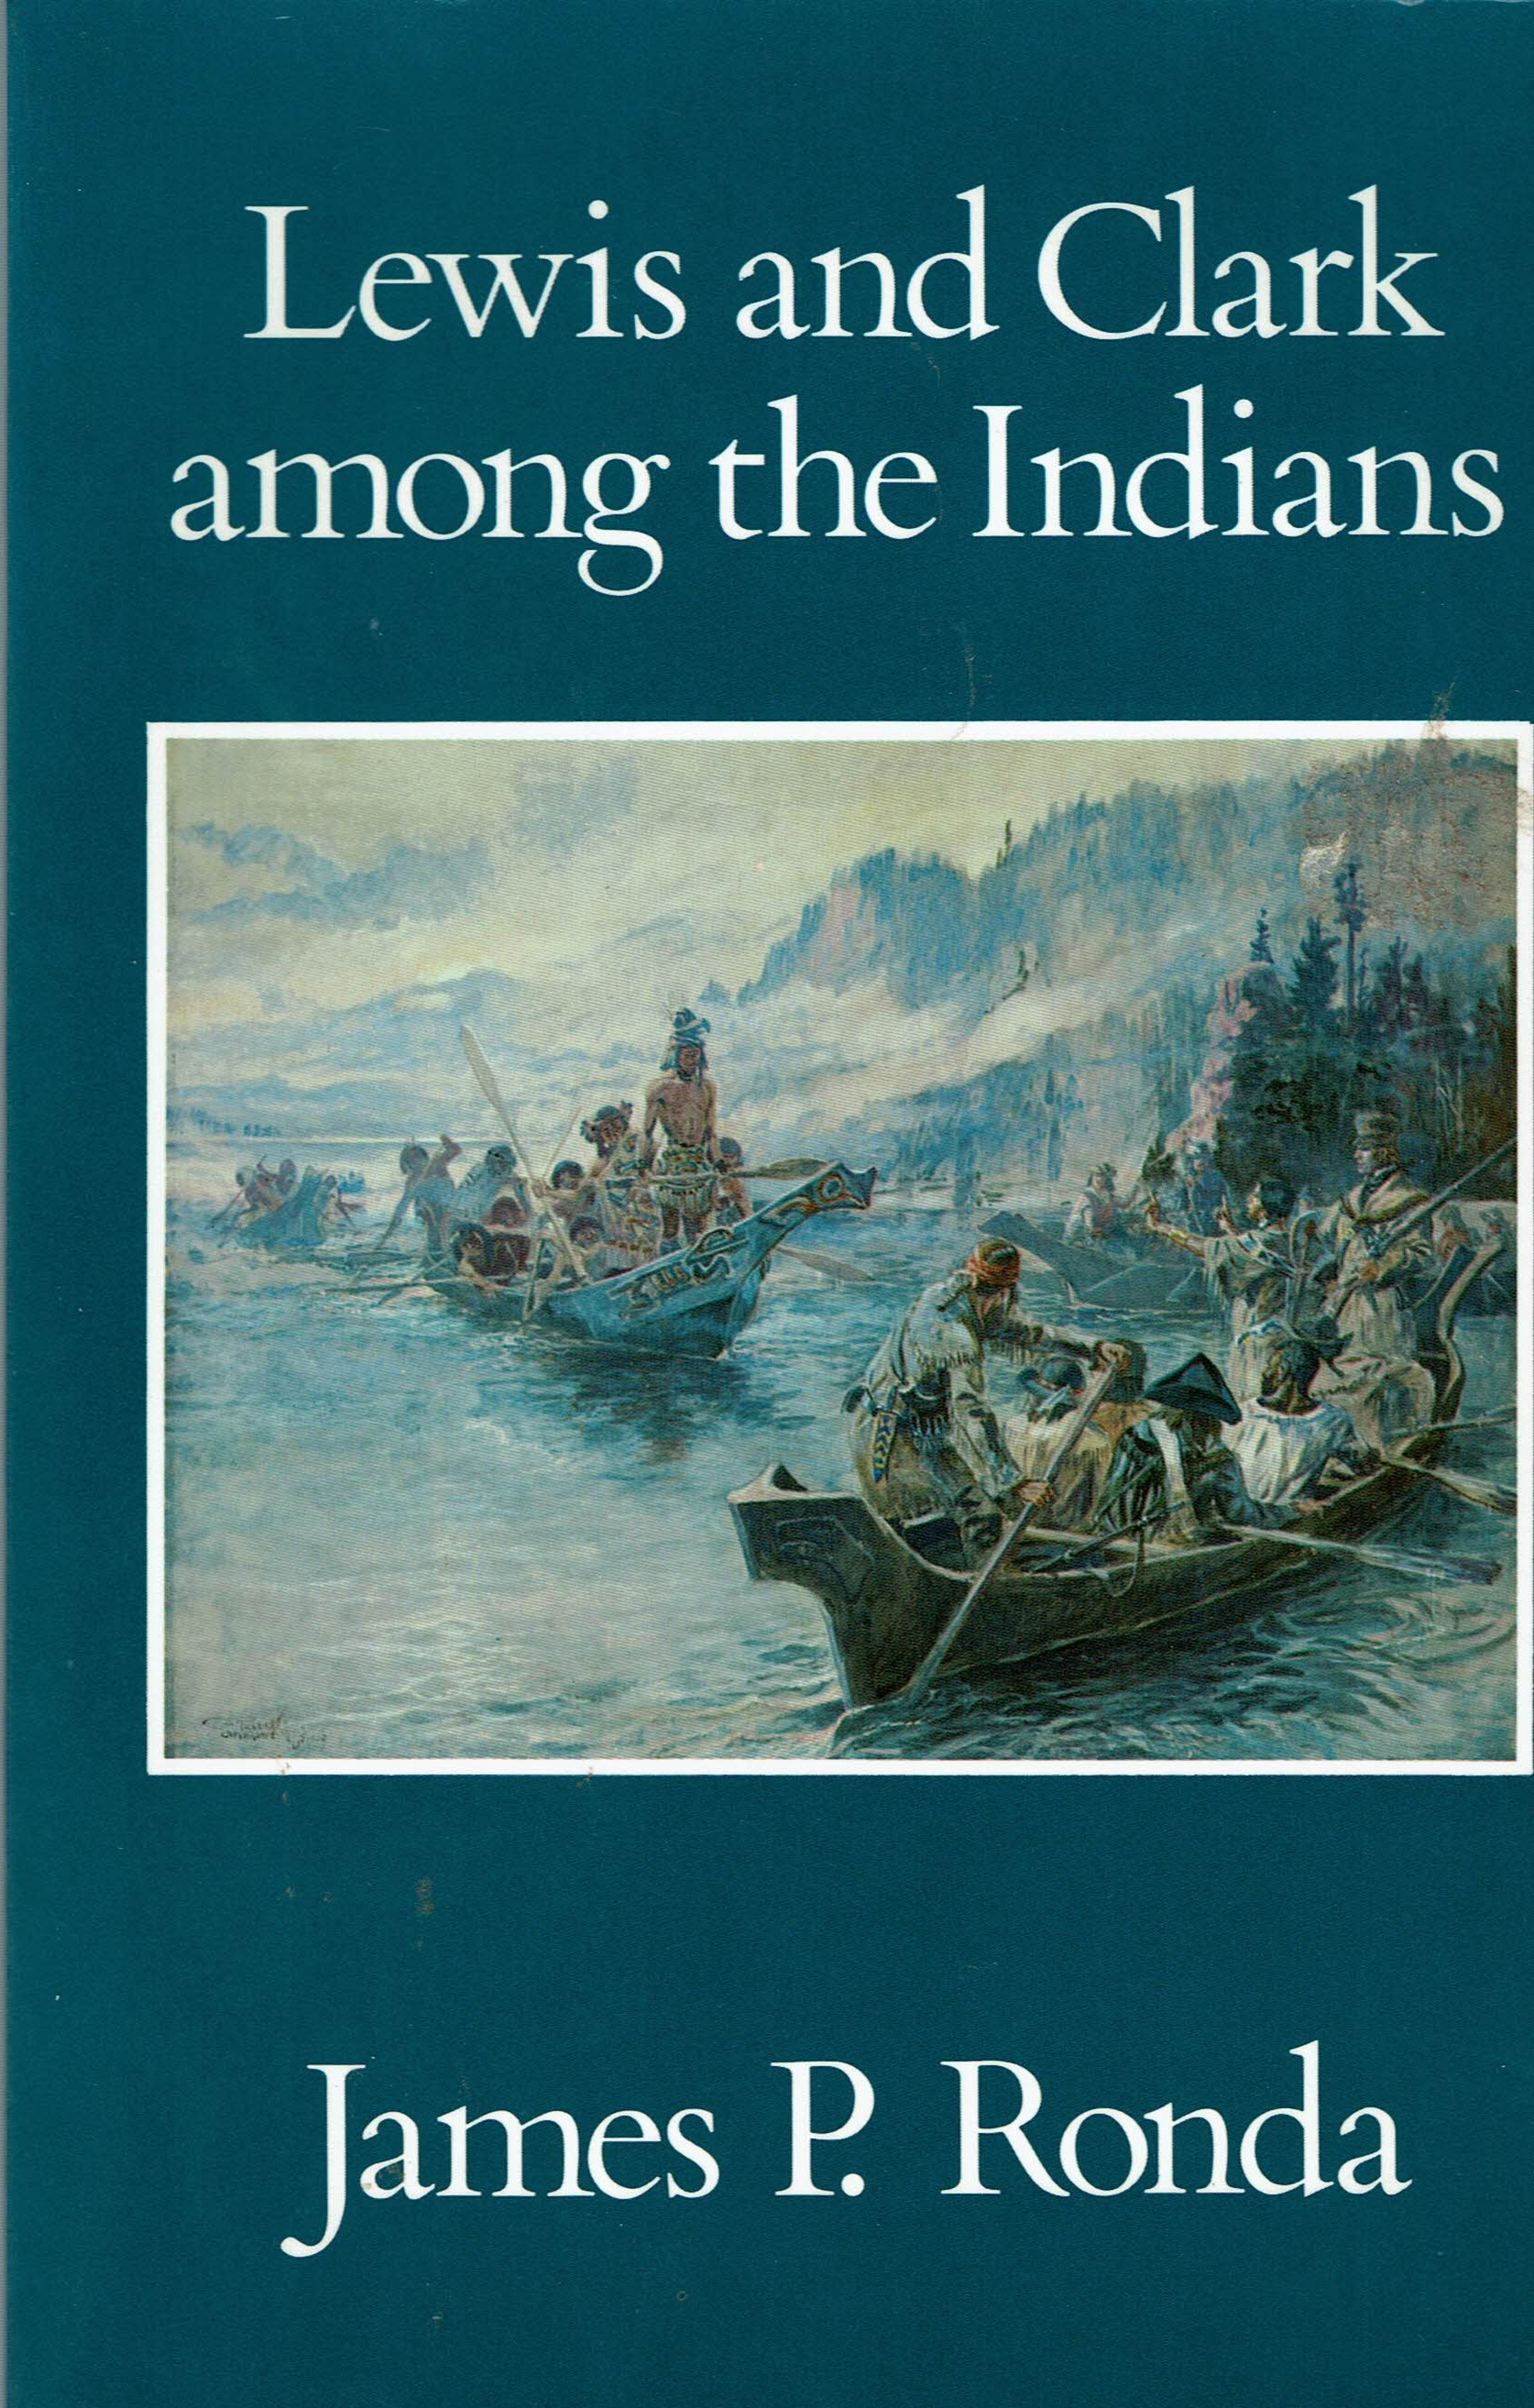 James P. Ronda. LEWIS AND CLARK AMONG THE INDIANS Published in 1988